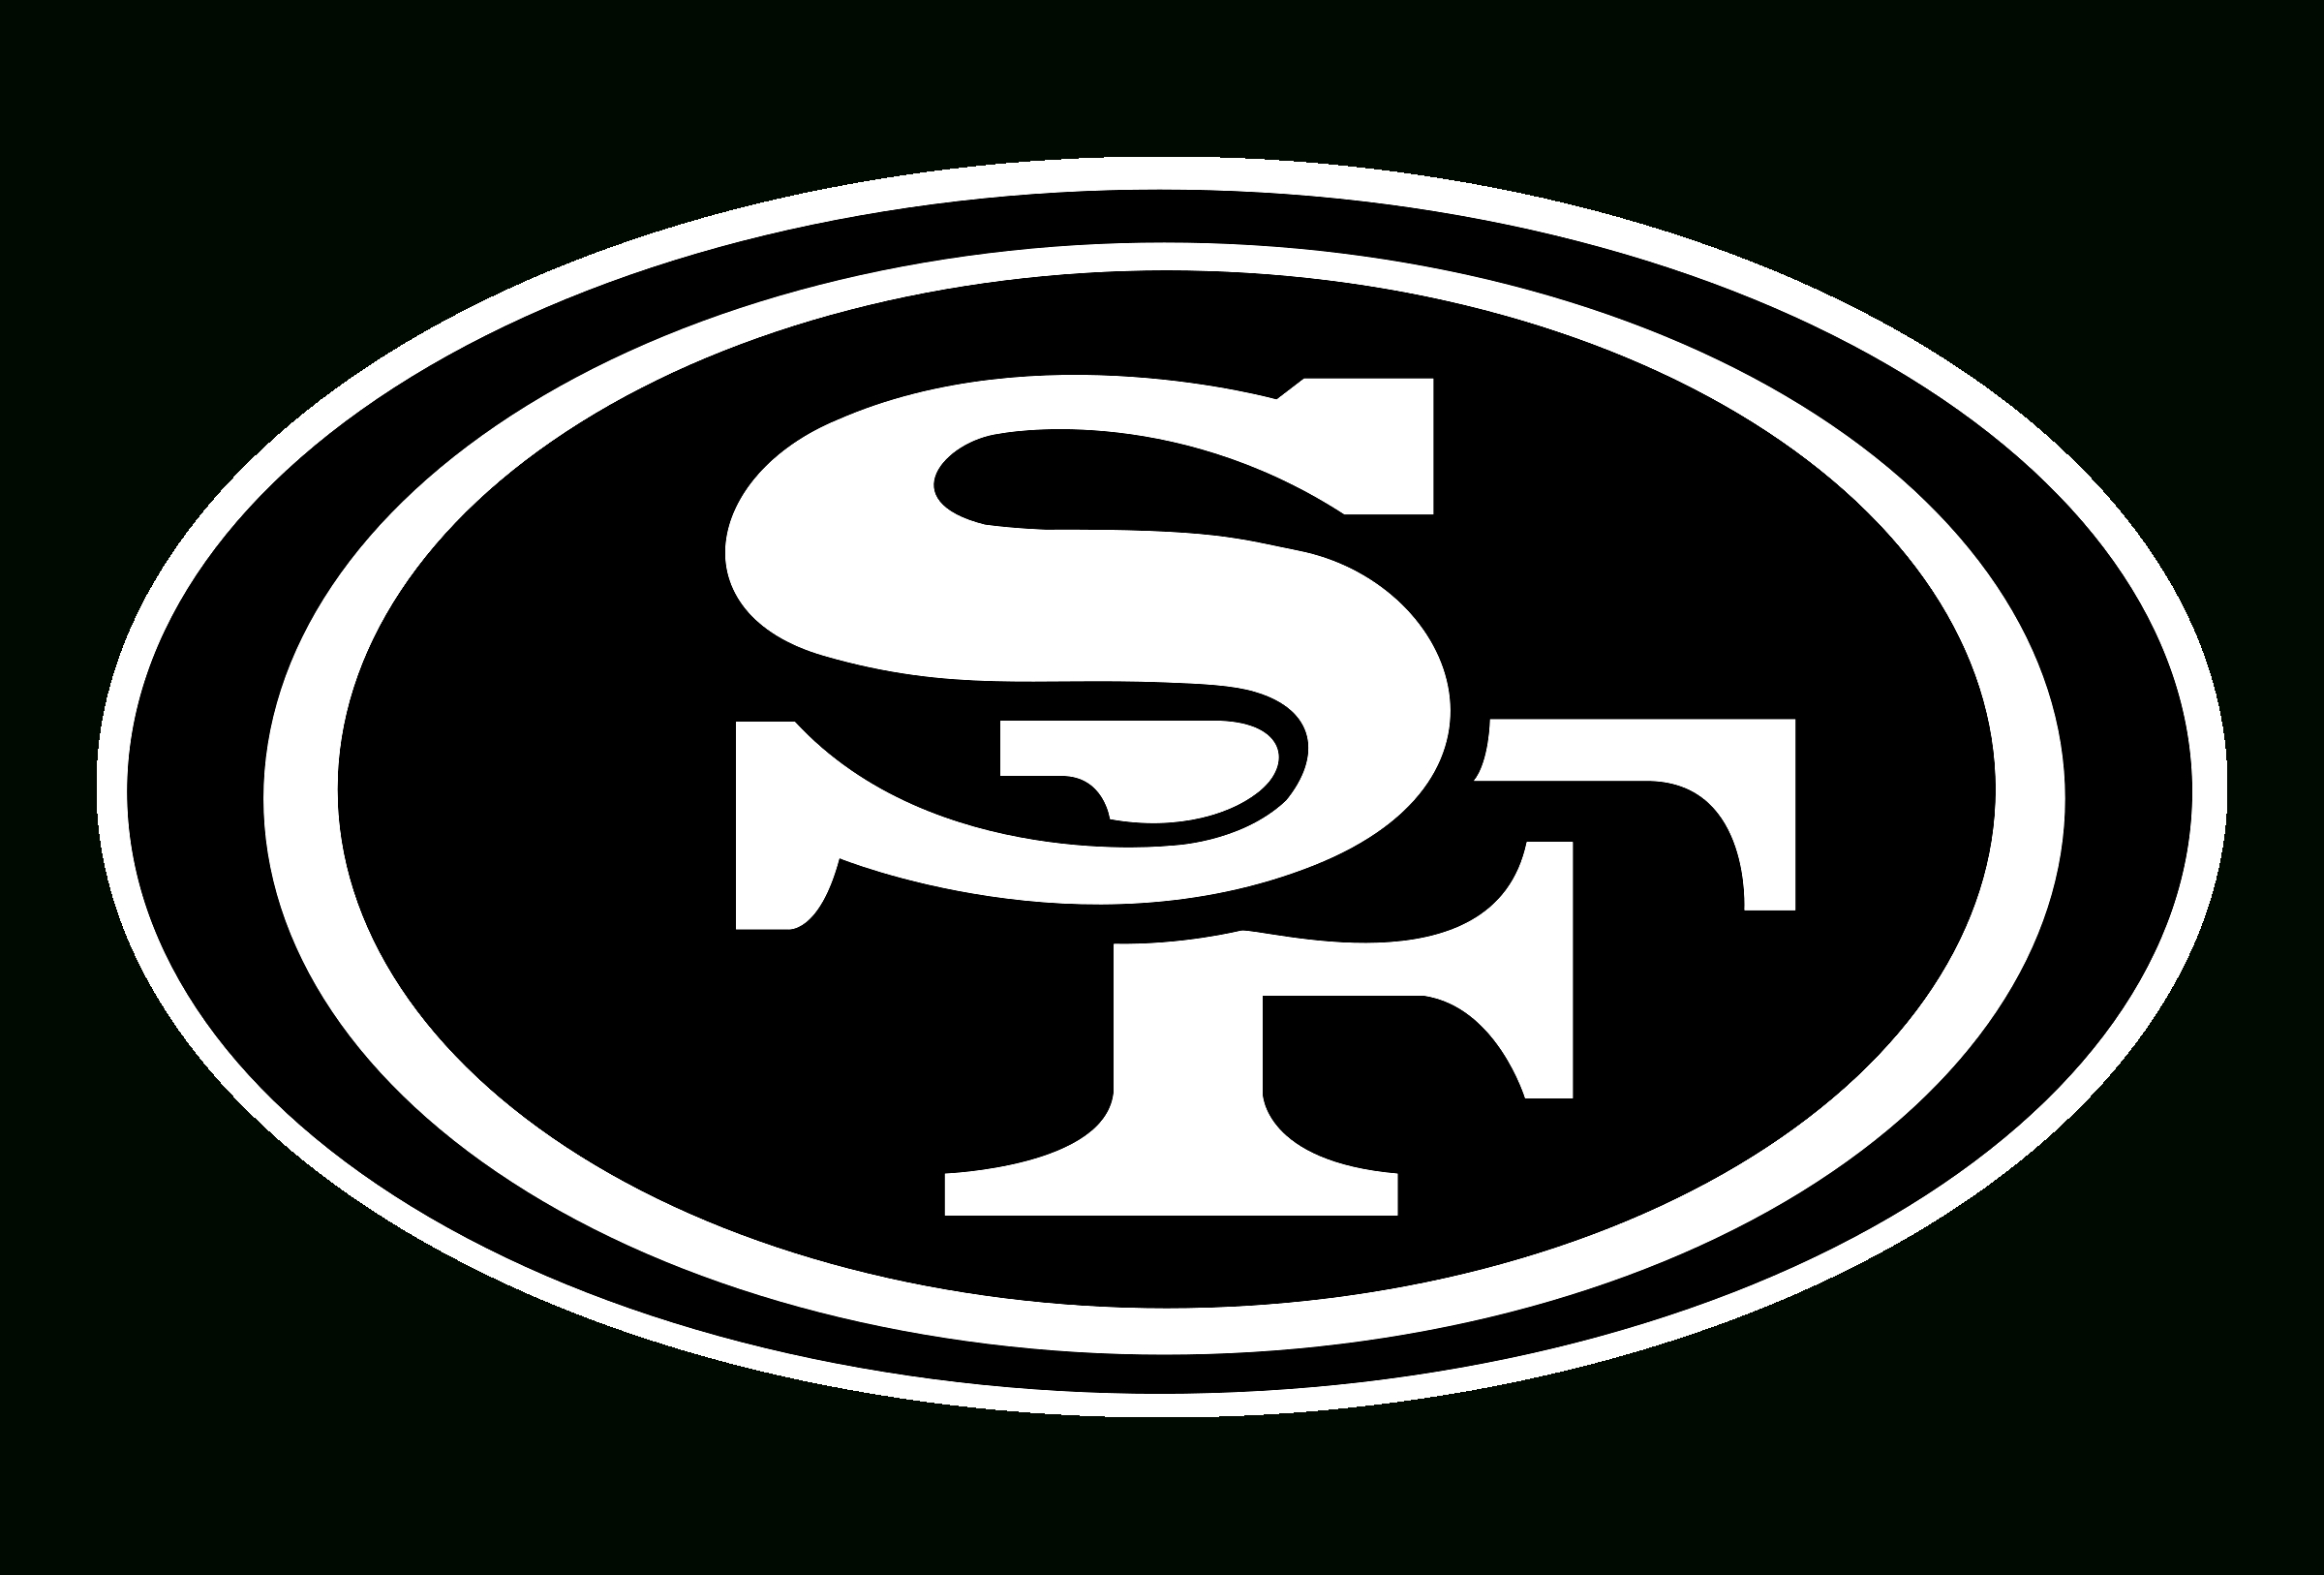 49ers logo pictures logo san francisco 49ers decals 49ers logo pictures